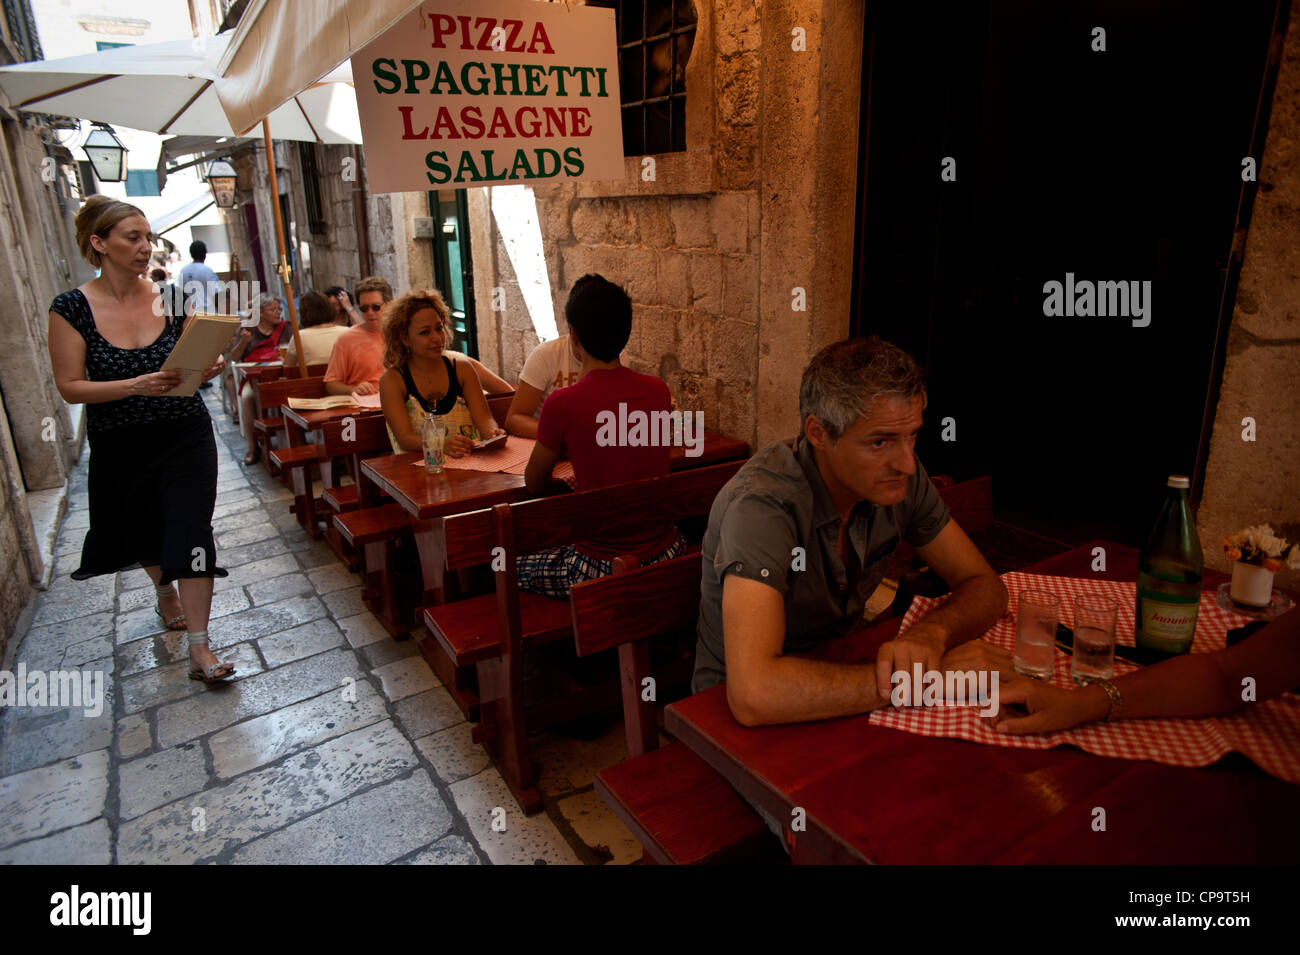 Outdoor Dining In A Italian Restaurant In A Narrow Street Old Town